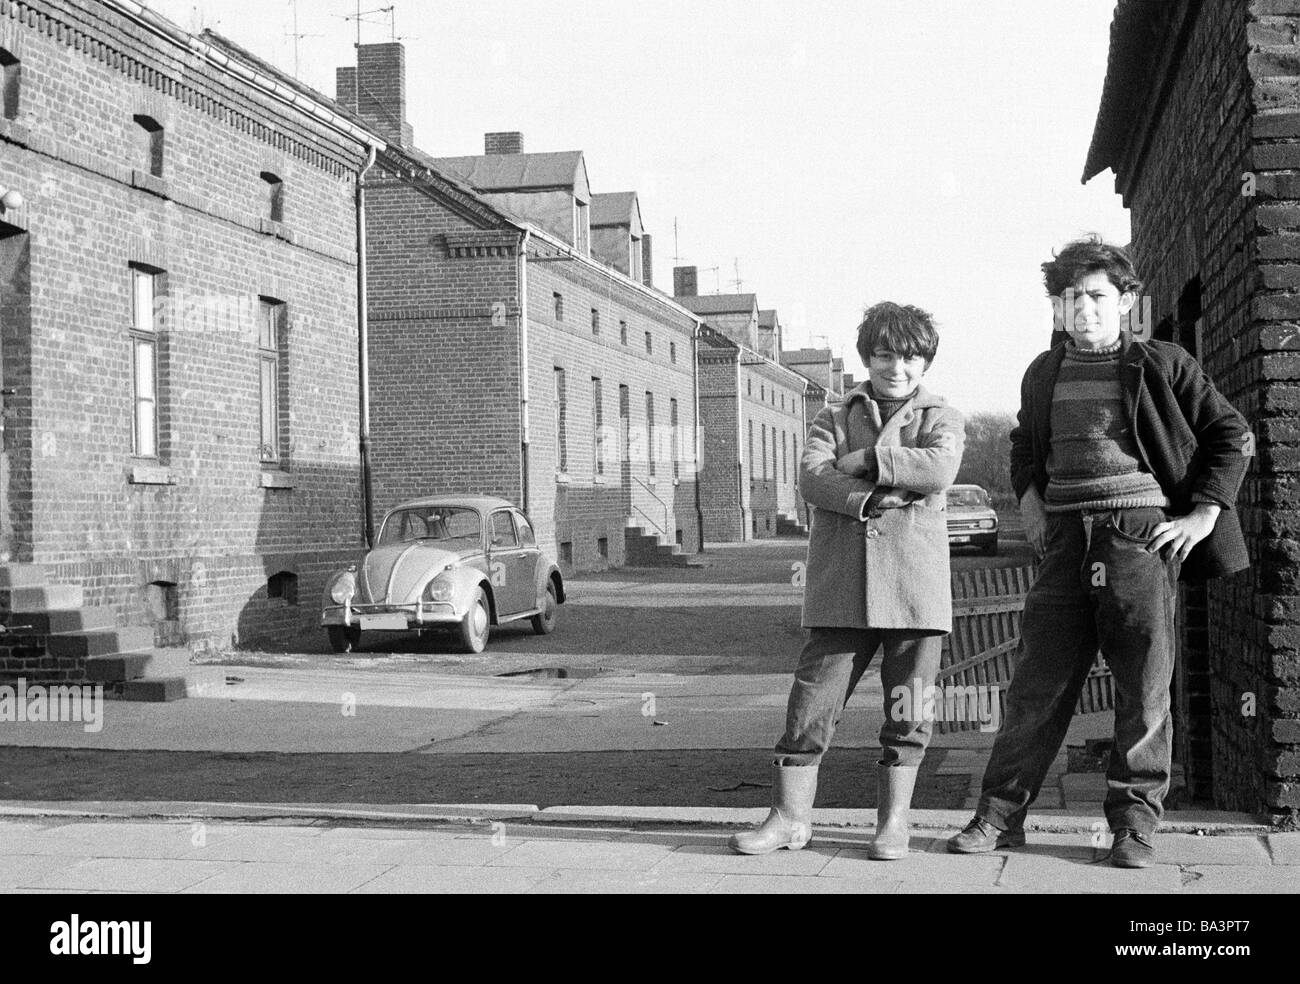 Seventies, black and white photo, people, children, two boys posing at a housing estate, pithead buildings, colony - Stock Image